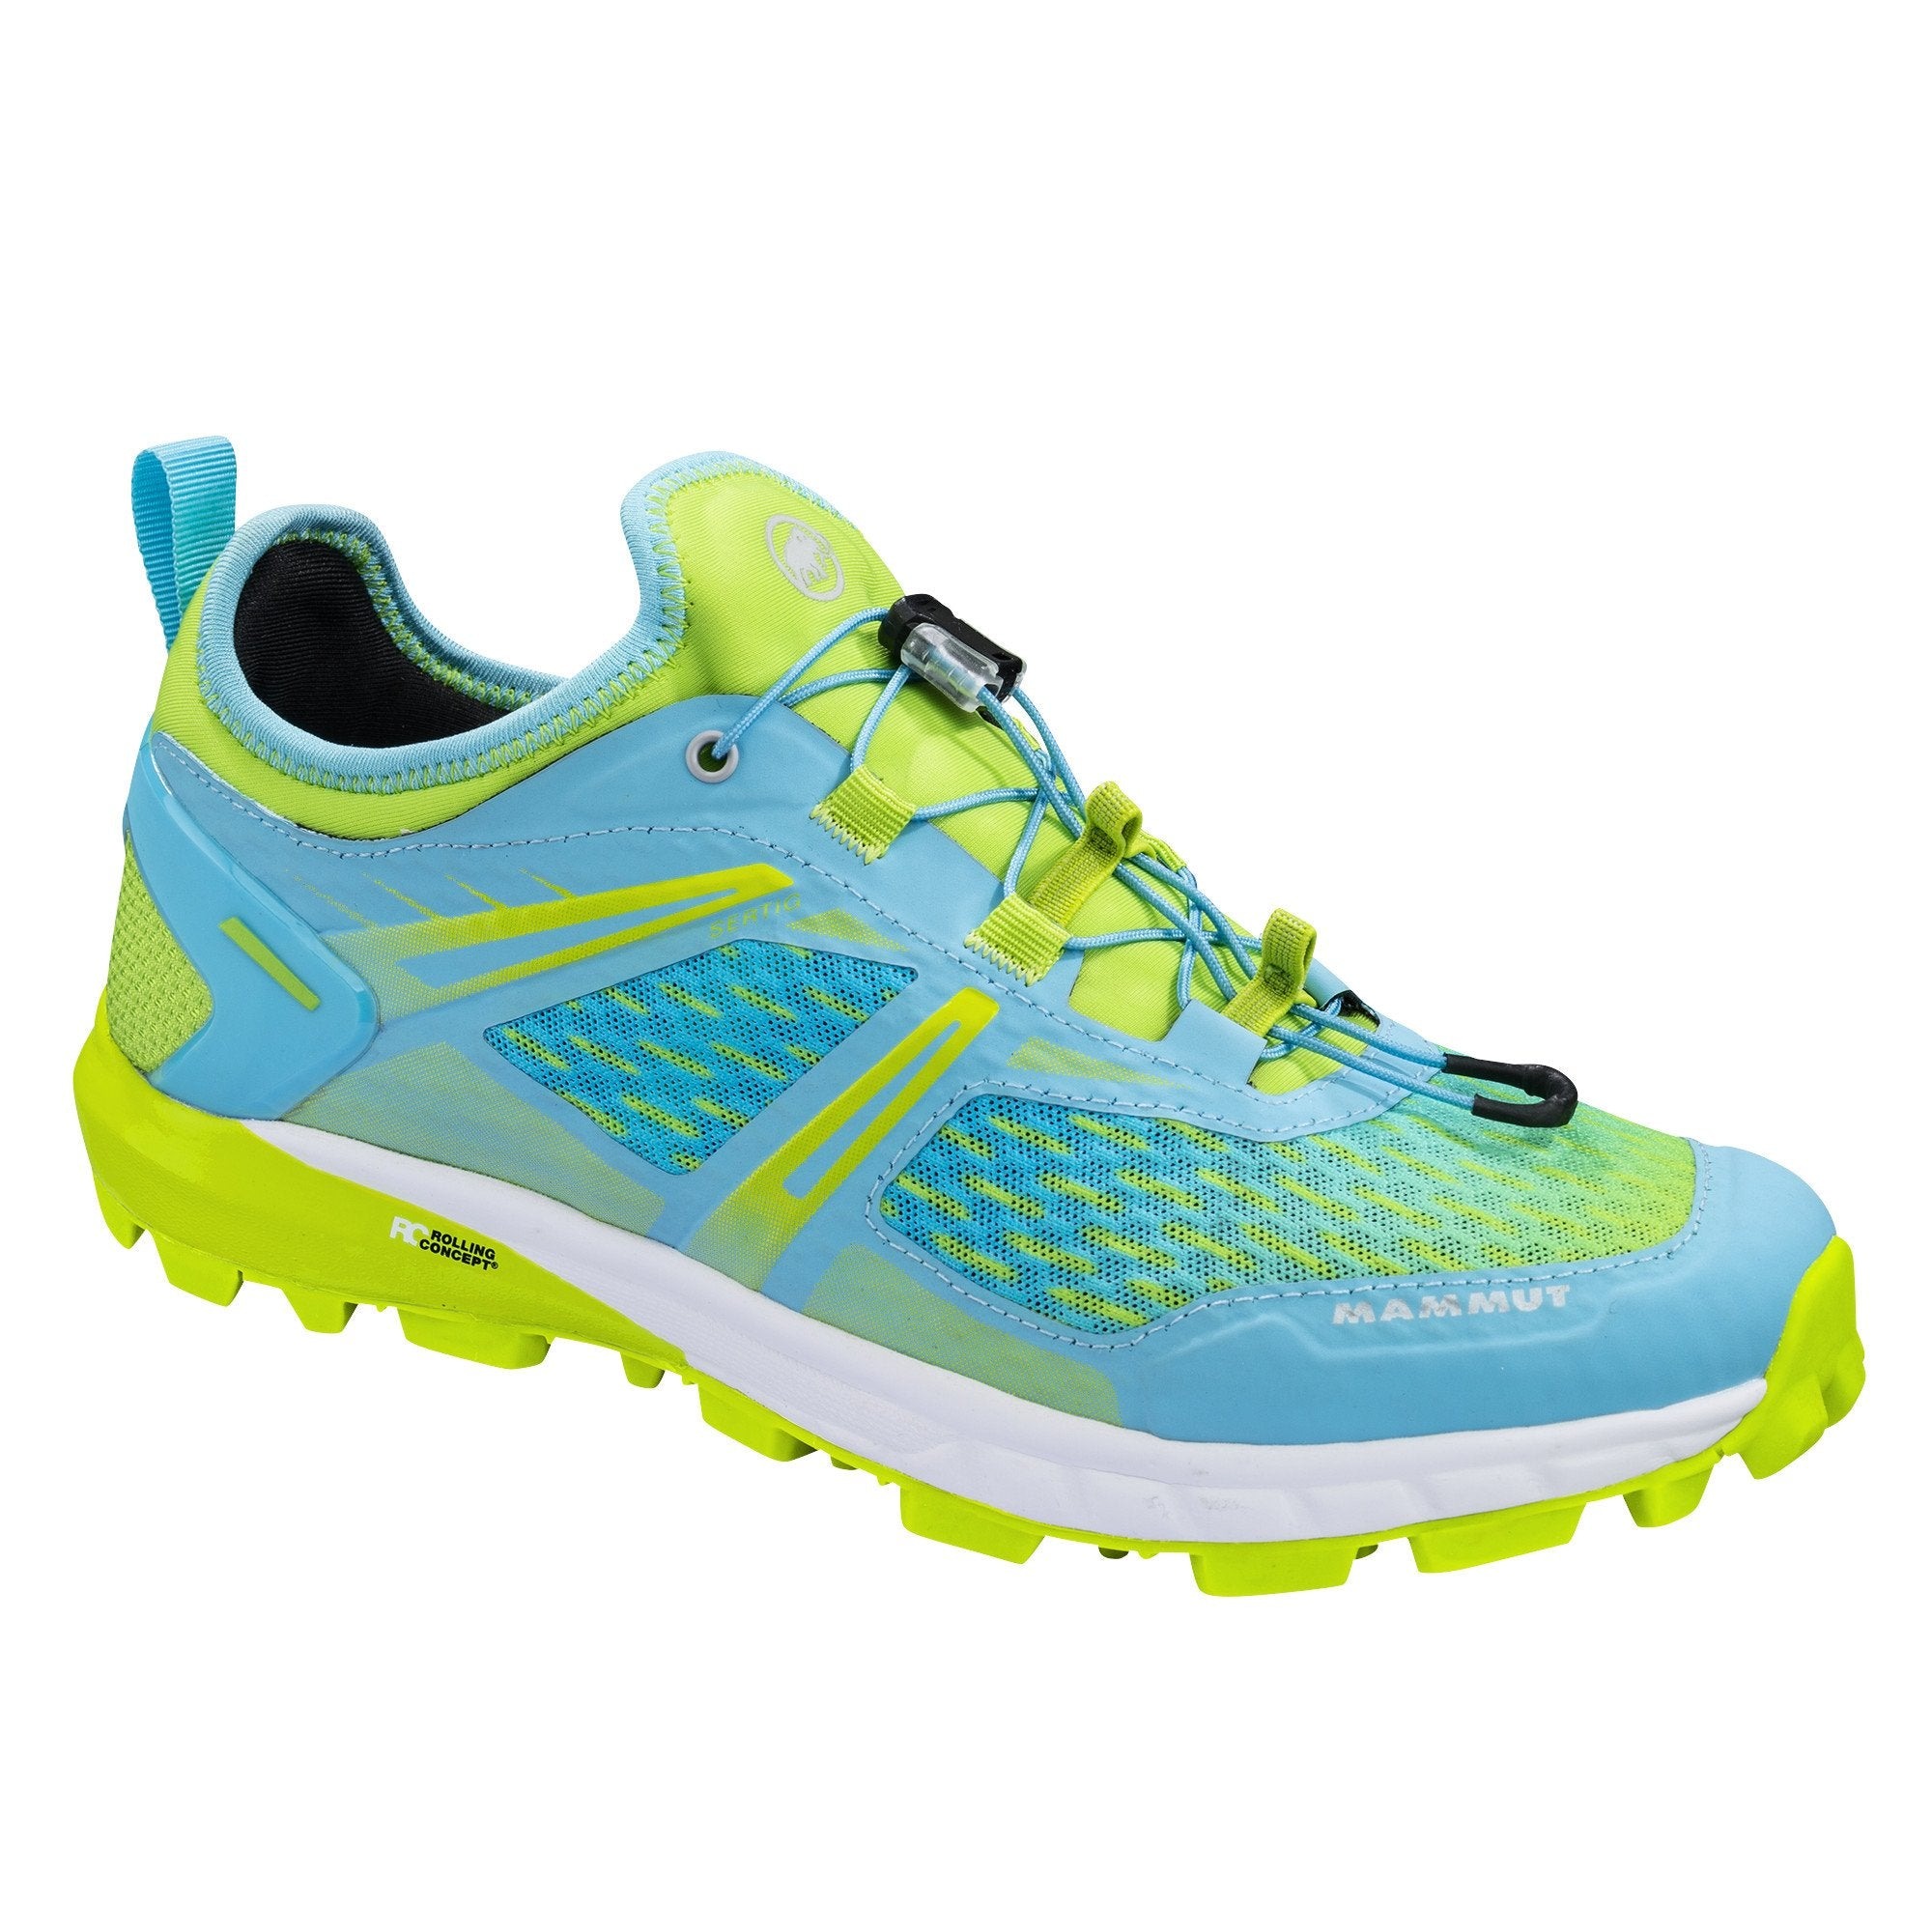 Mammut Sertig Low Womens running shoe, outer side view in green and blue colours